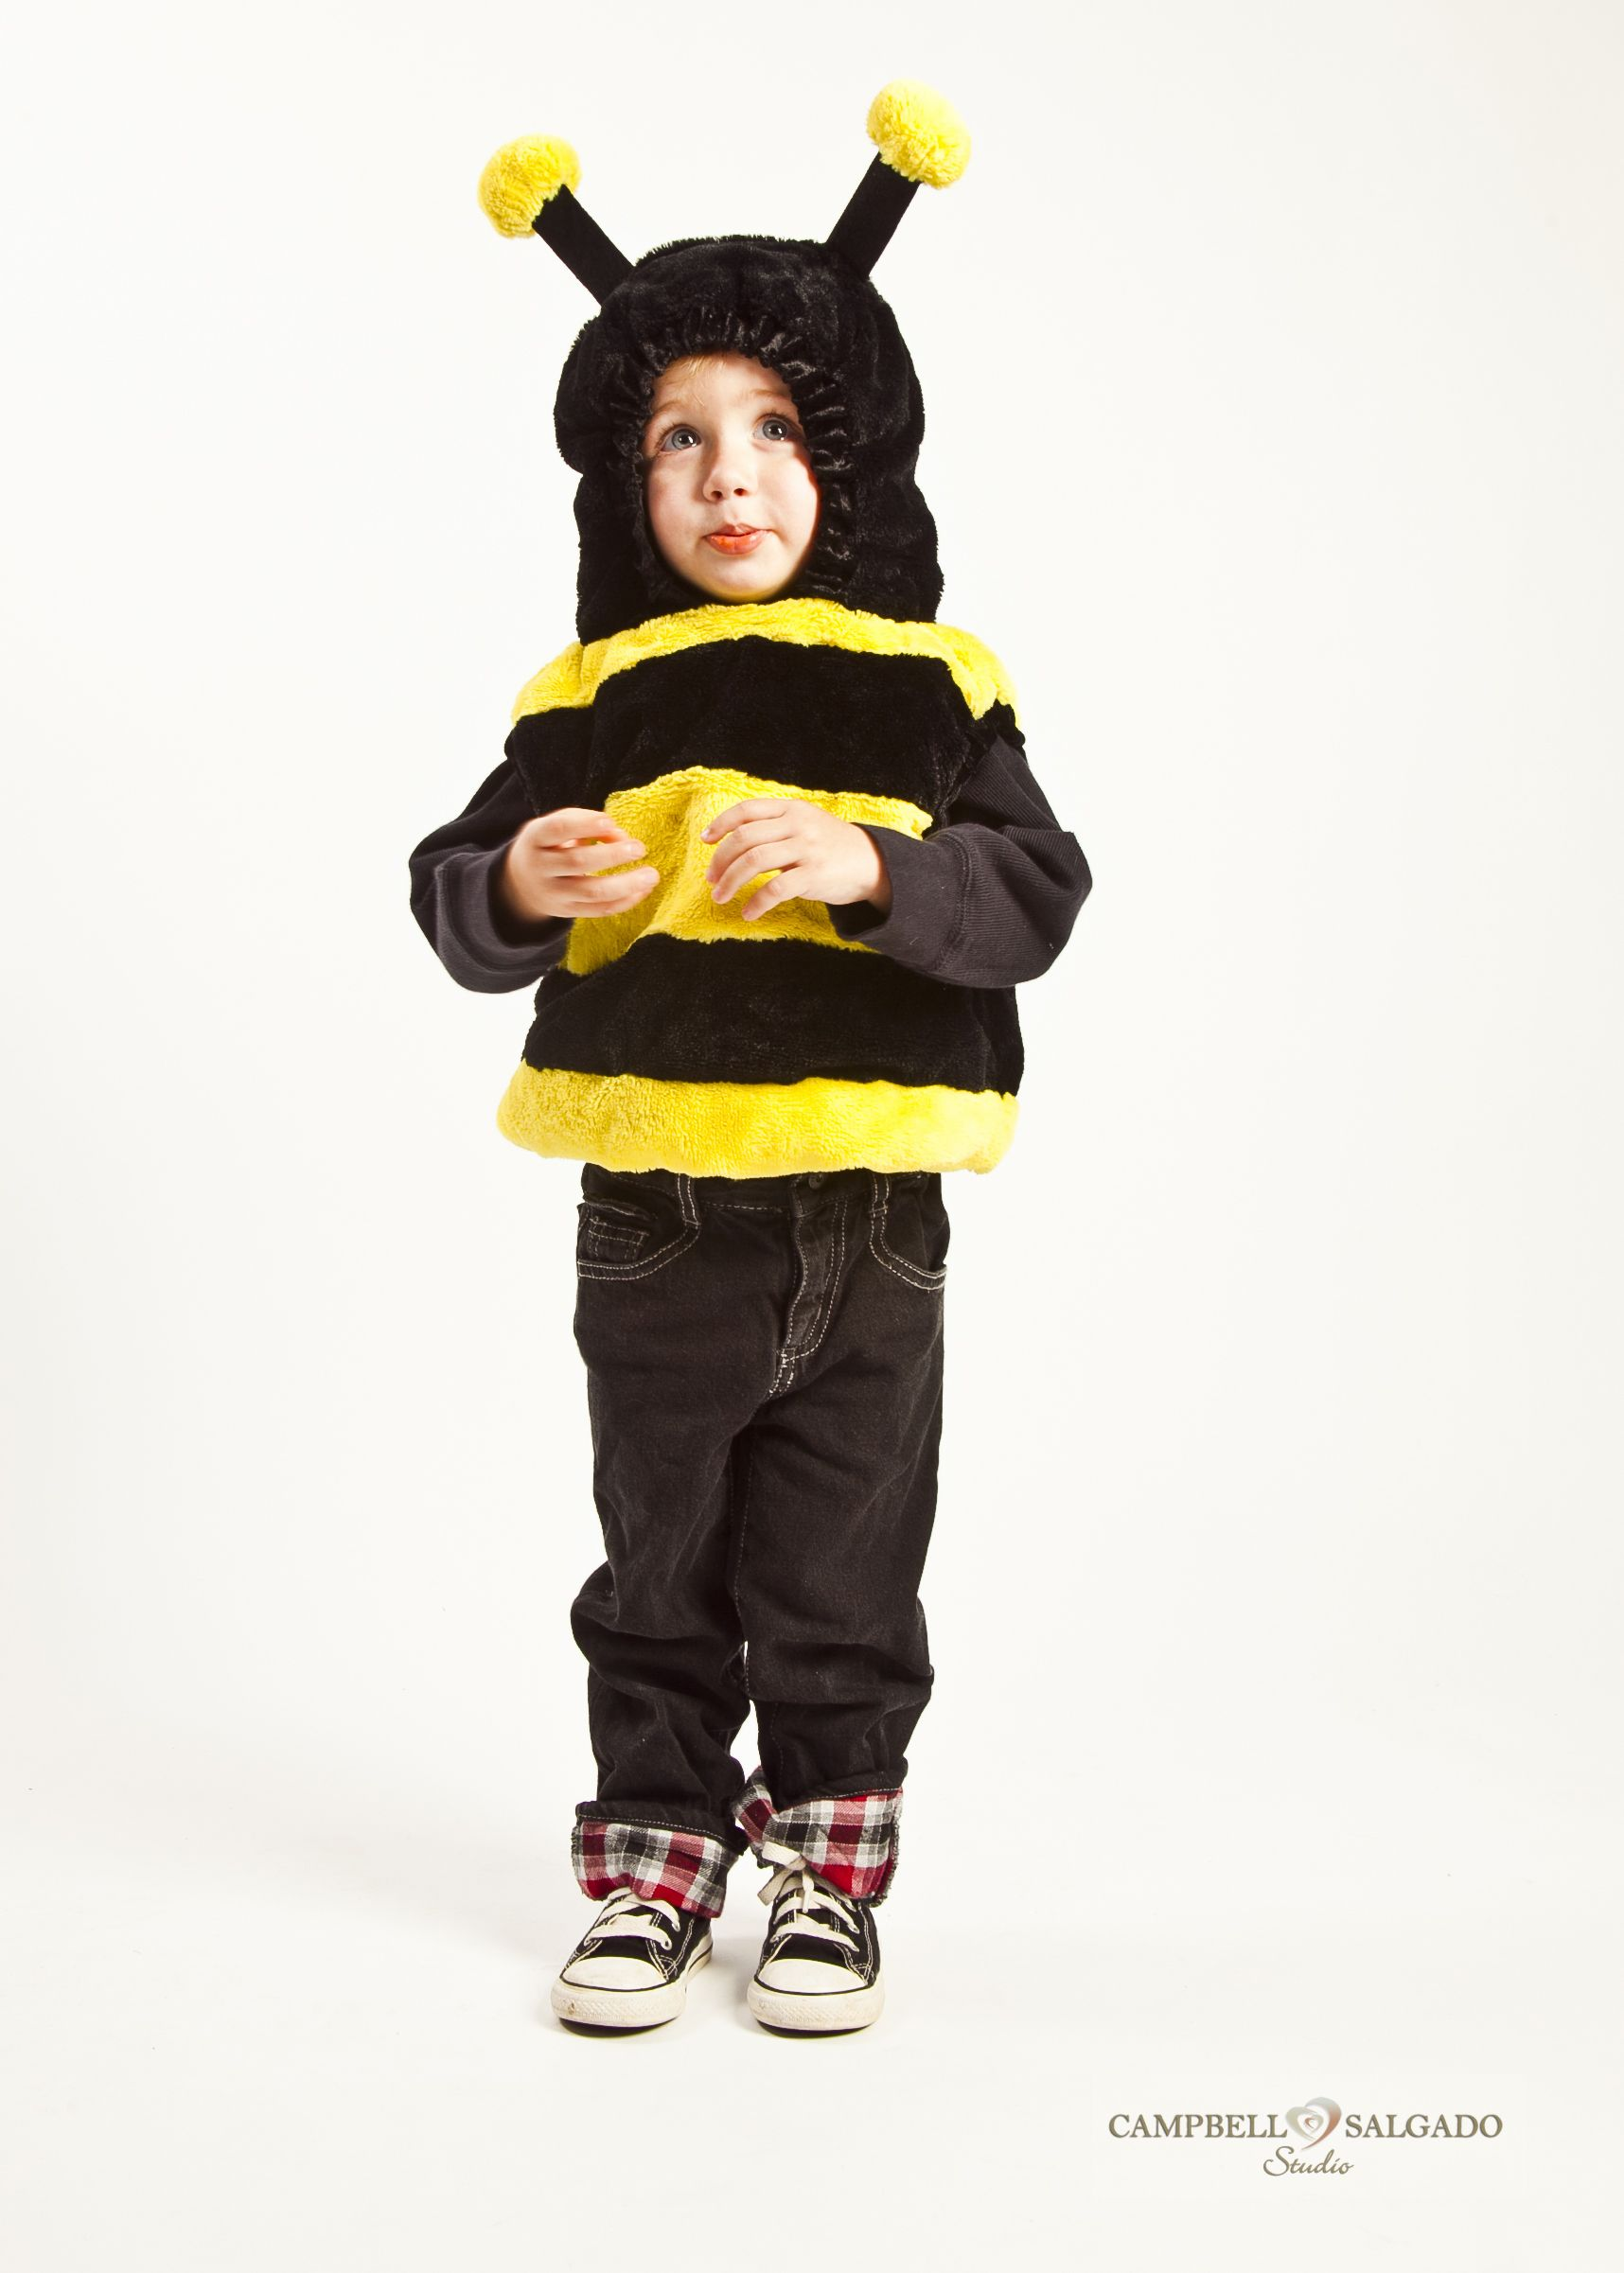 a toddler in a bumble bee halloween costume kinda takes the sting away doesnt it